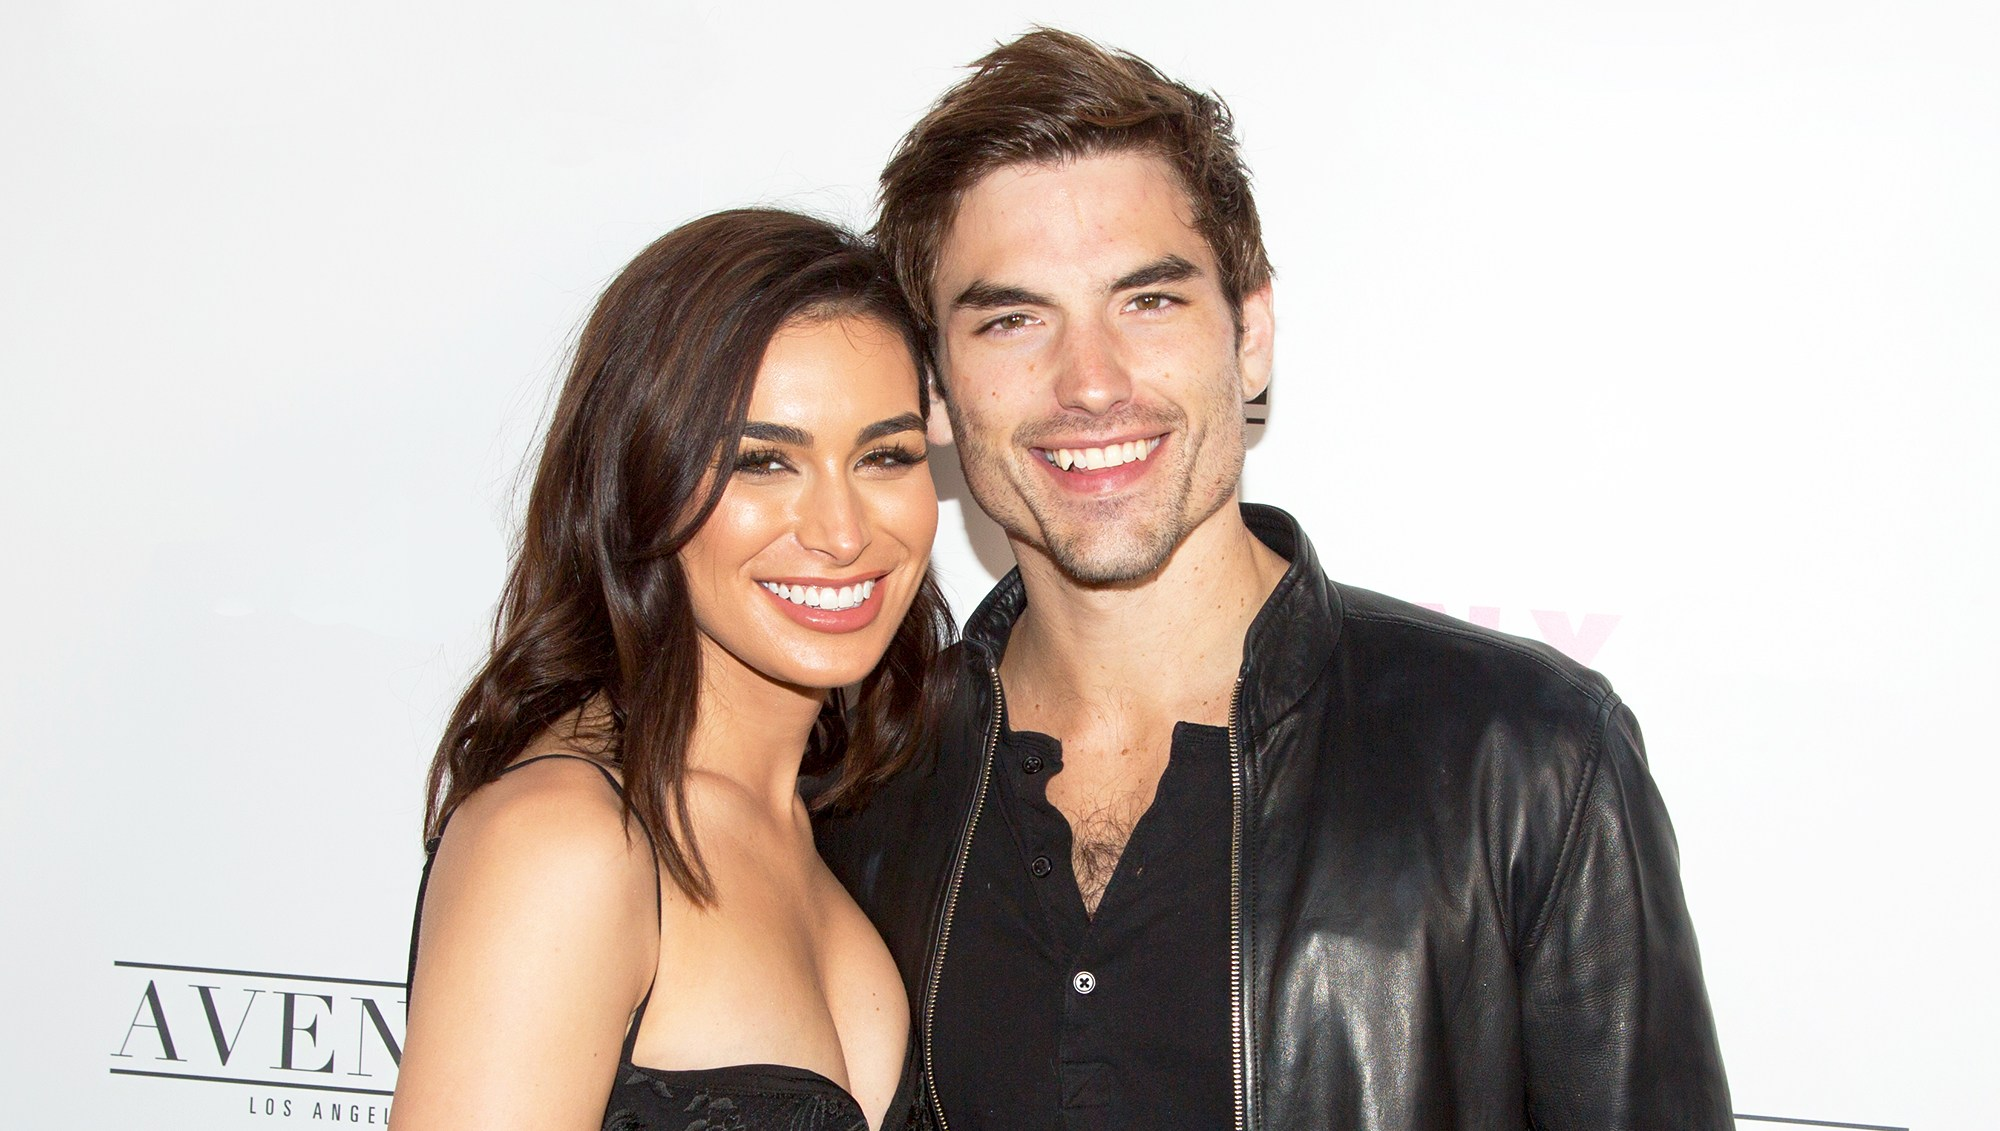 Ashley Iaconetti and Jared Haibon arrive for NYLON Hosts Annual Young Hollywood Party at Avenue on May 22, 2018 in Los Angeles, California.